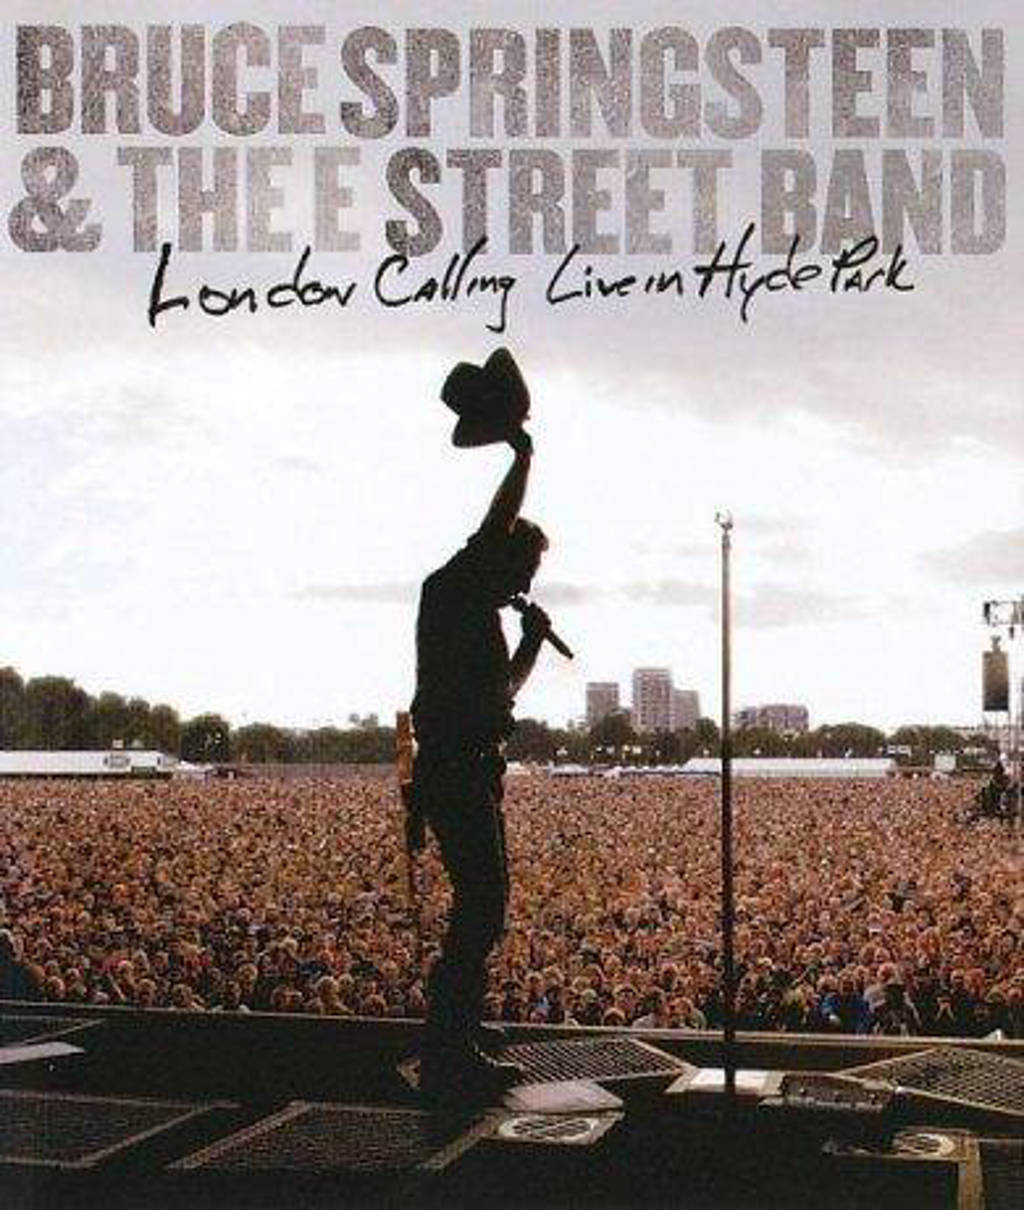 Bruce Springsteen & The E Street Band - London Calling: Live In Hyde Park (Blu-ray)